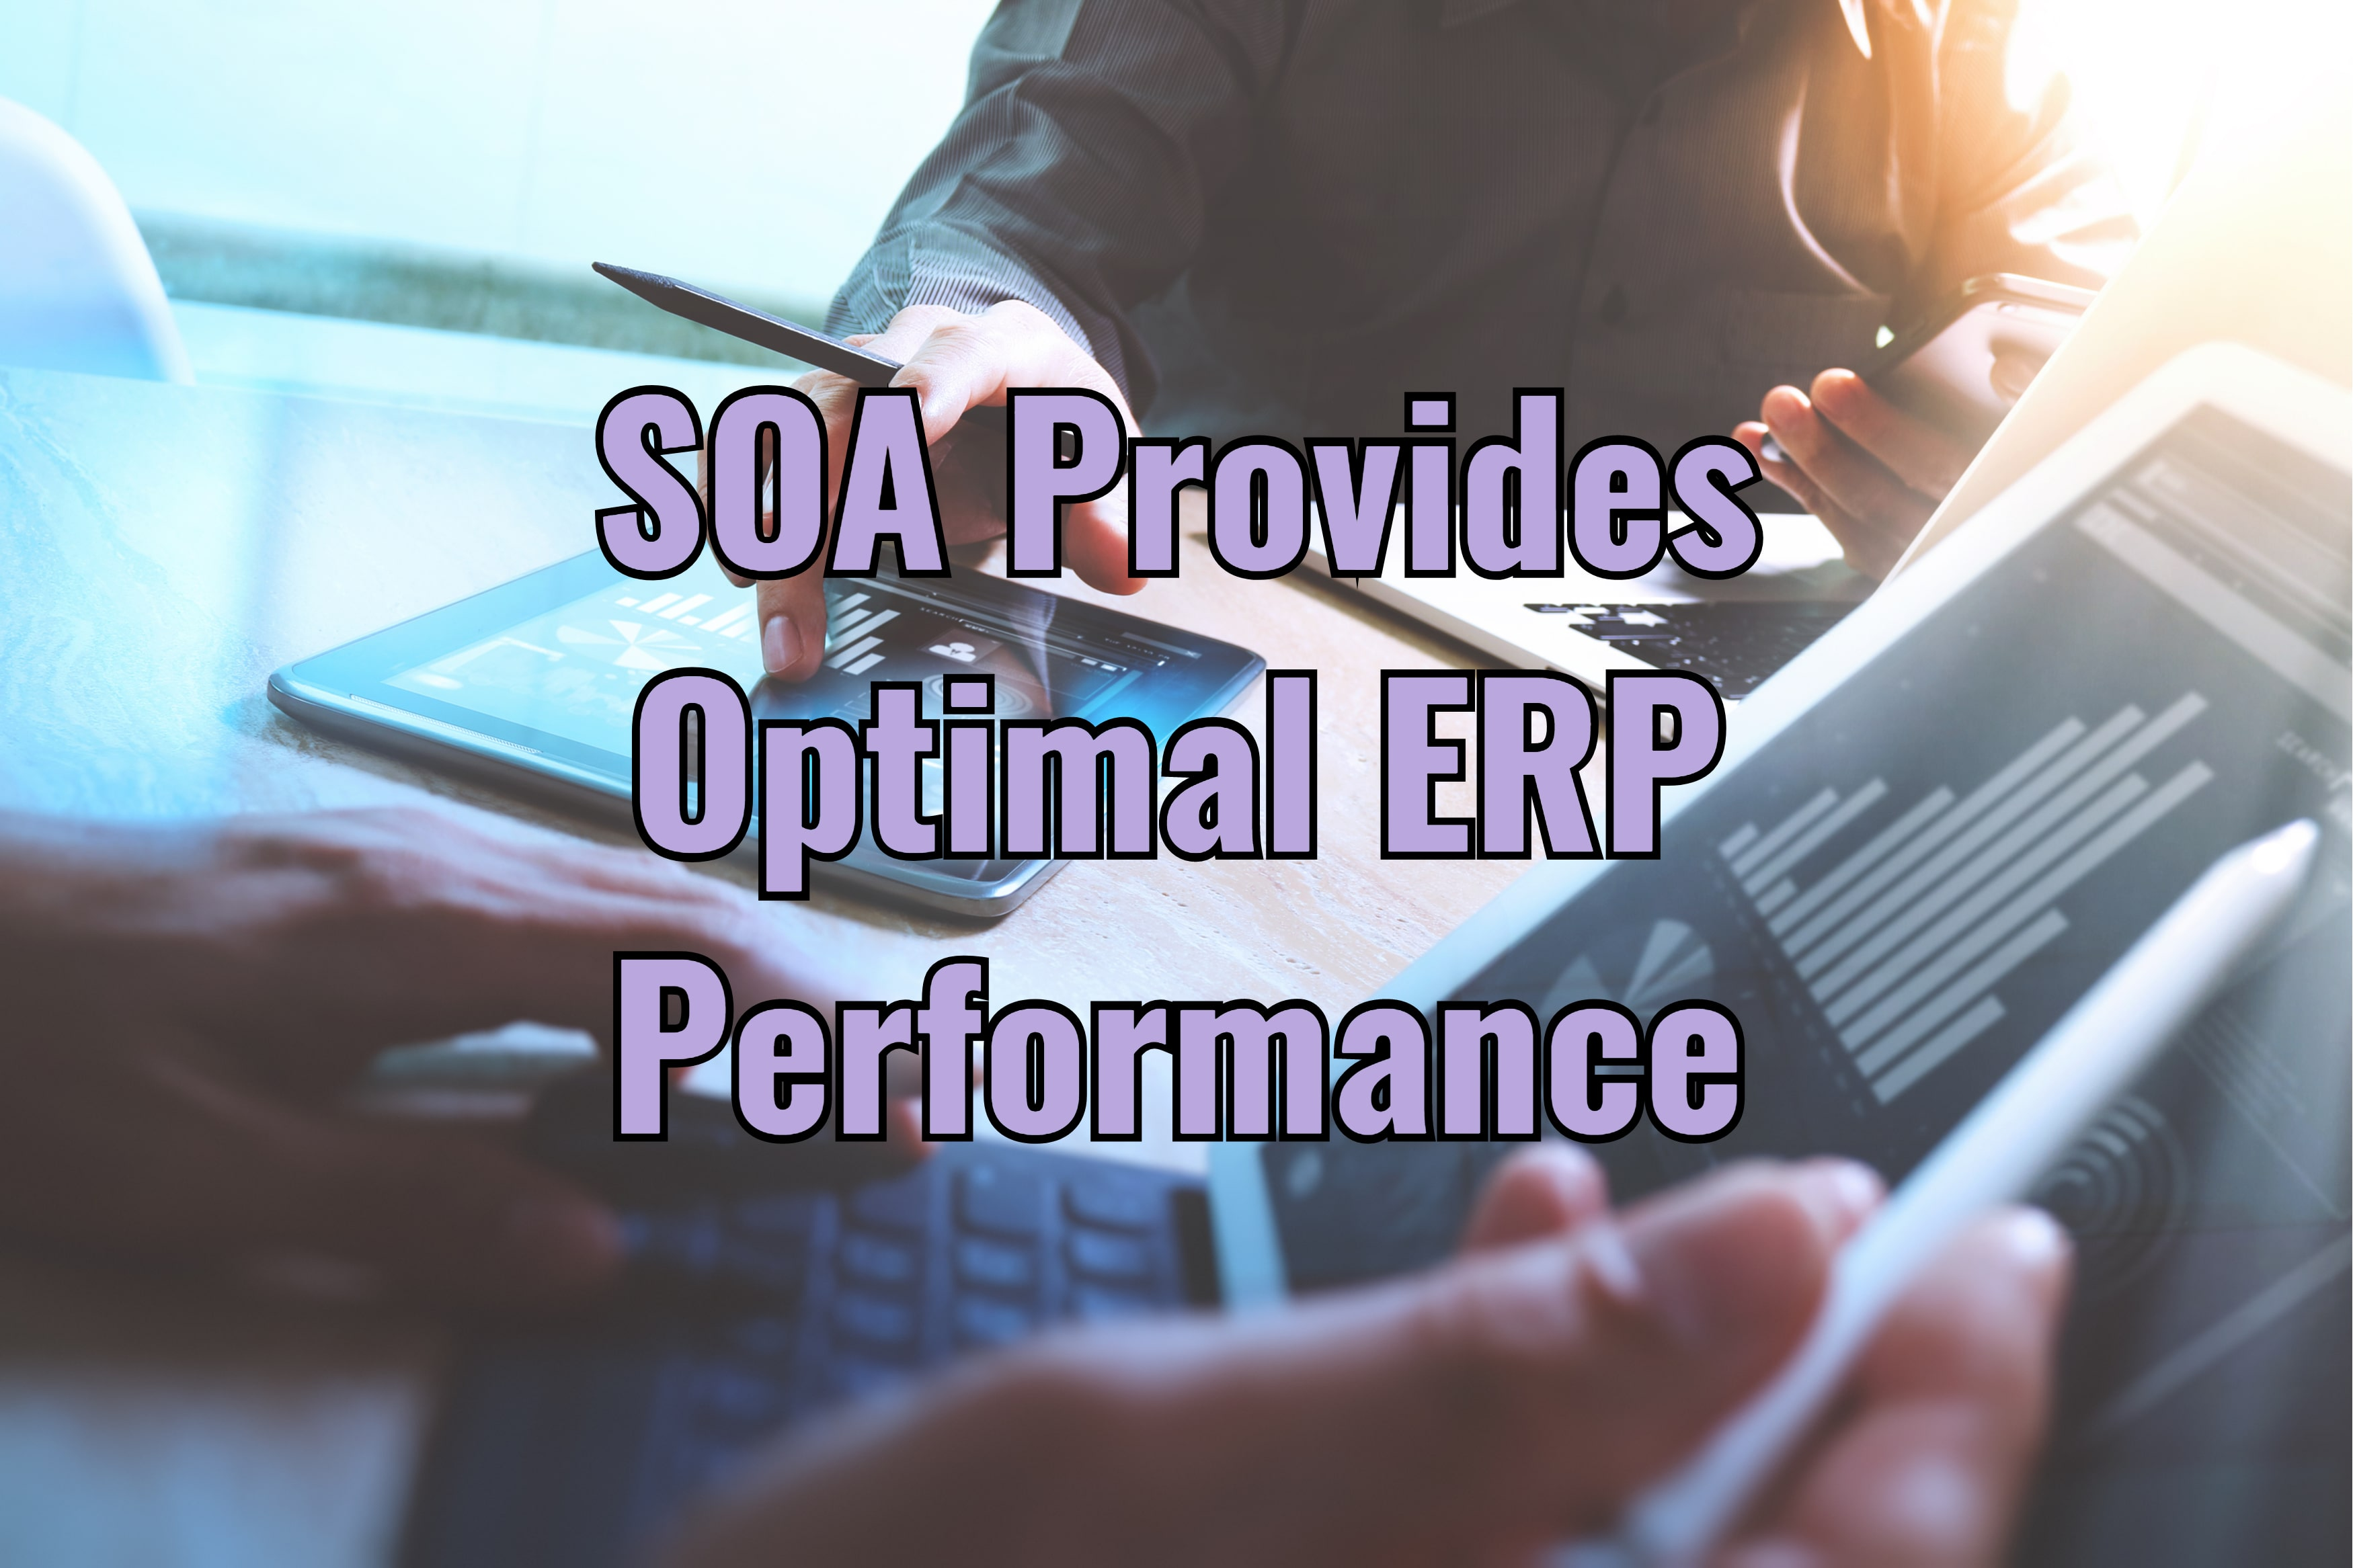 How SOA Provides Optimal ERP Performance